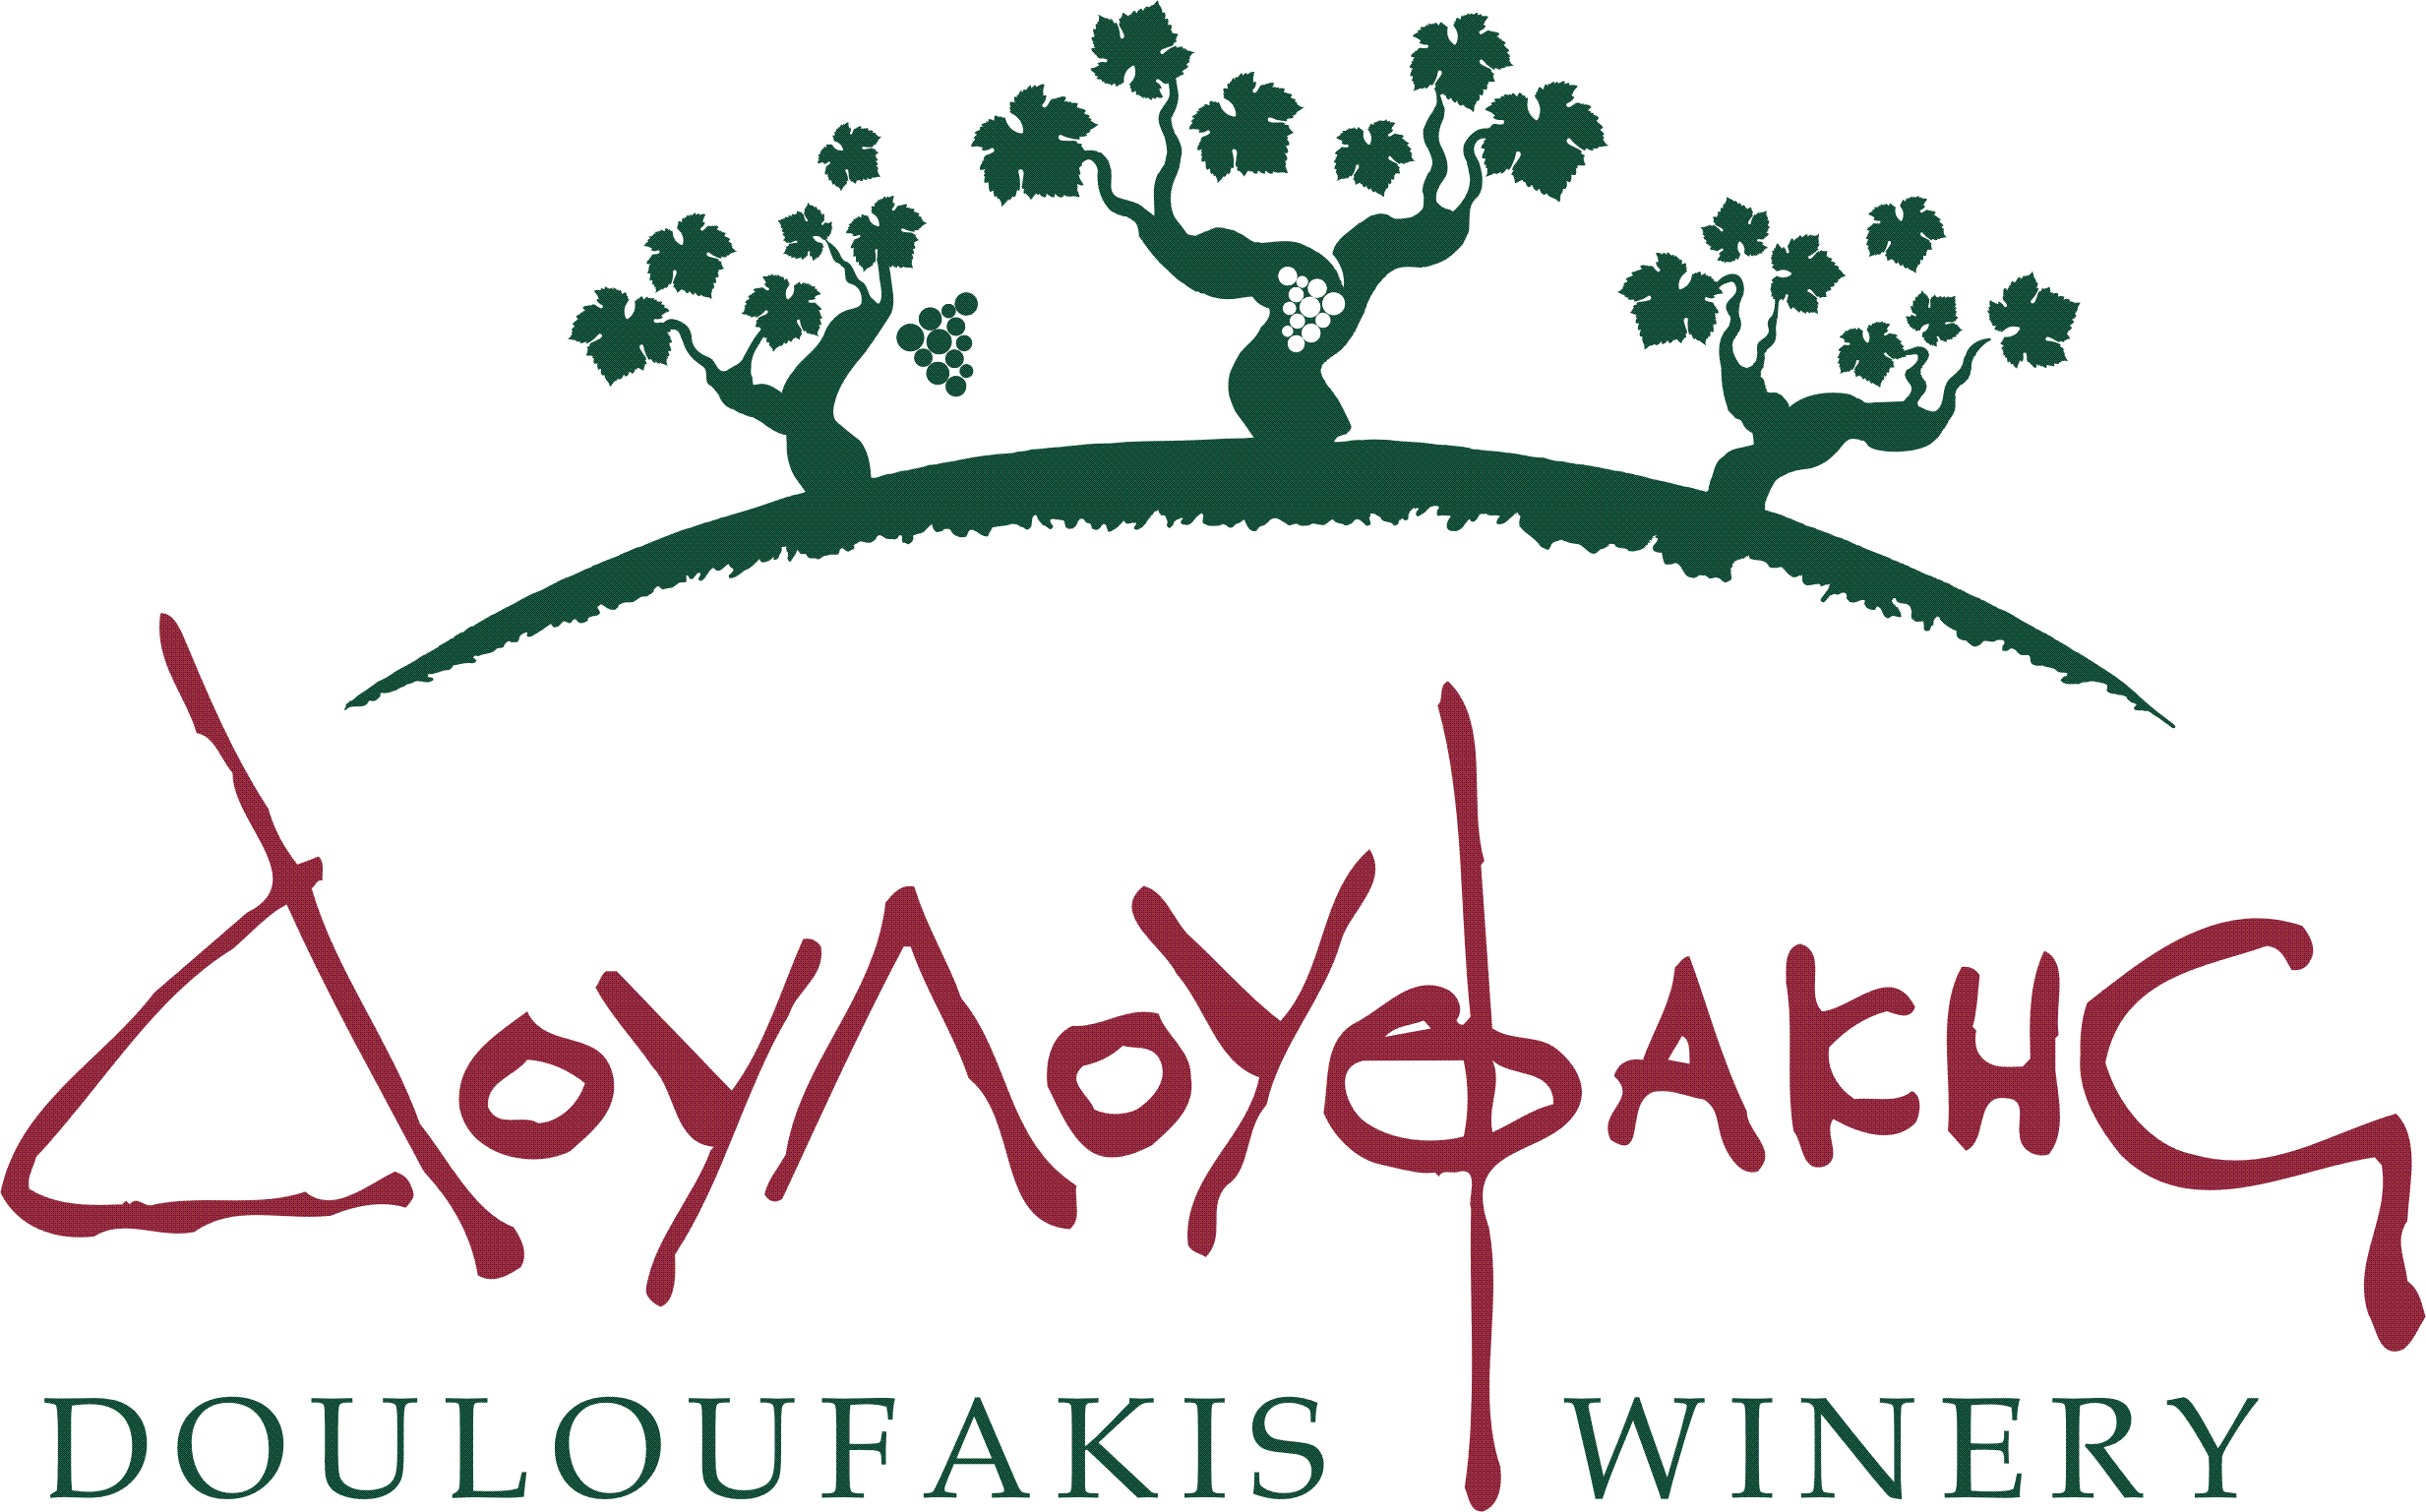 Douloufakis Winery